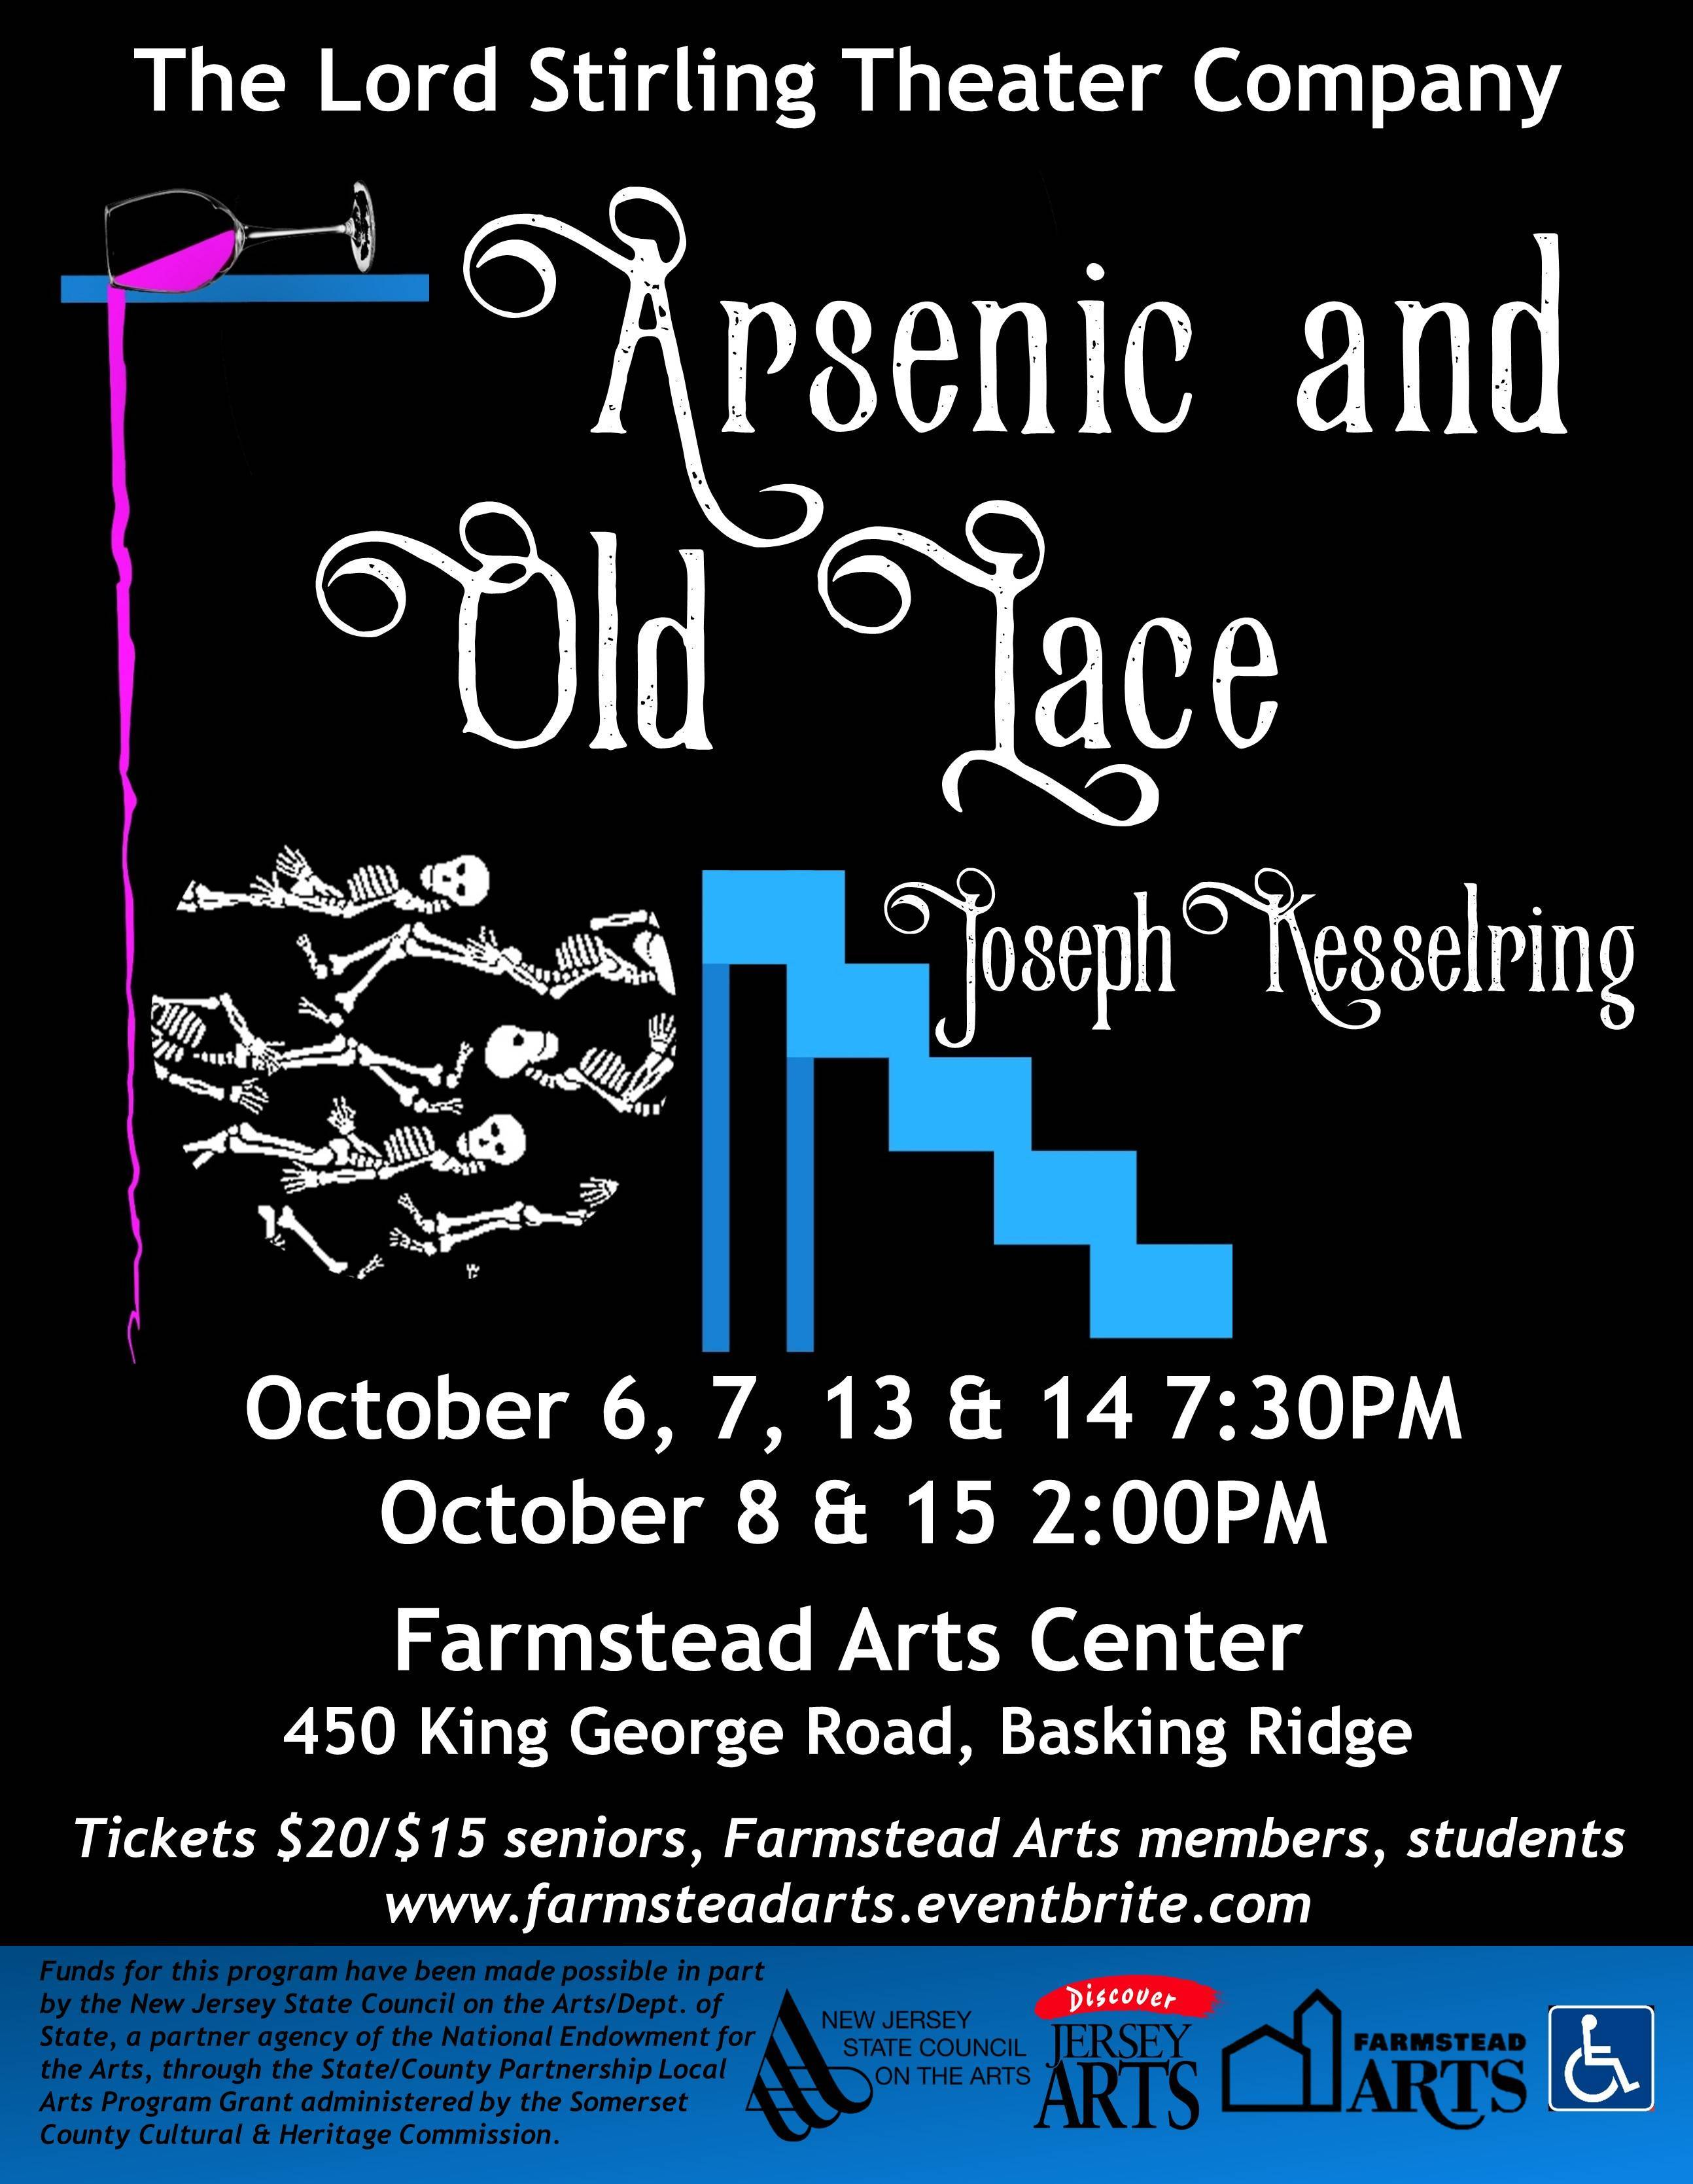 0ed0083c132fe0c5598f_Arsenic_and_Old_Lace_Flyer.jpg